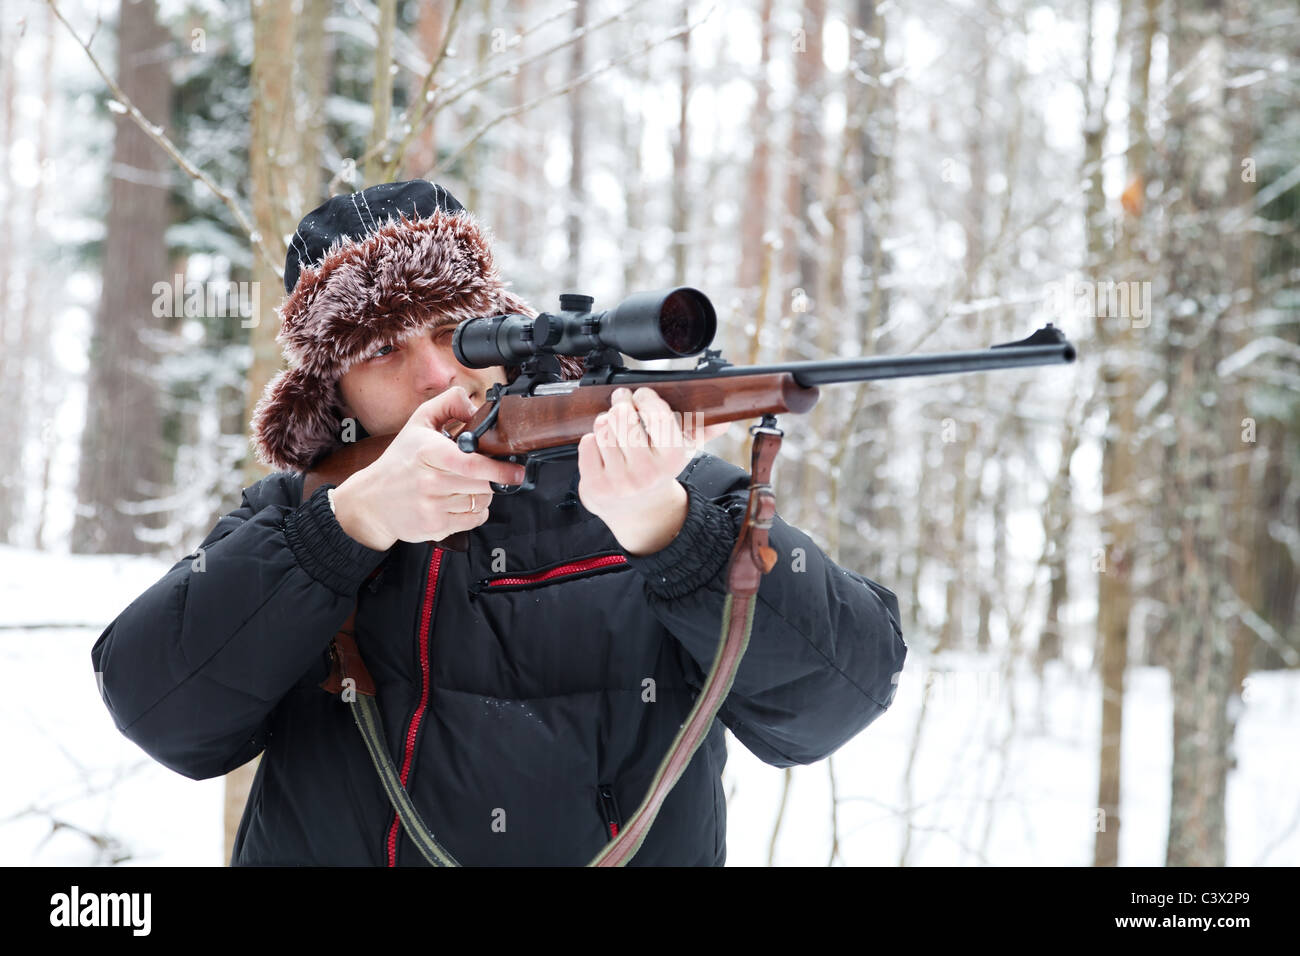 65fe5896b0e Hunter in a fur cap with ear flaps with sniper rifle in winter forest. -